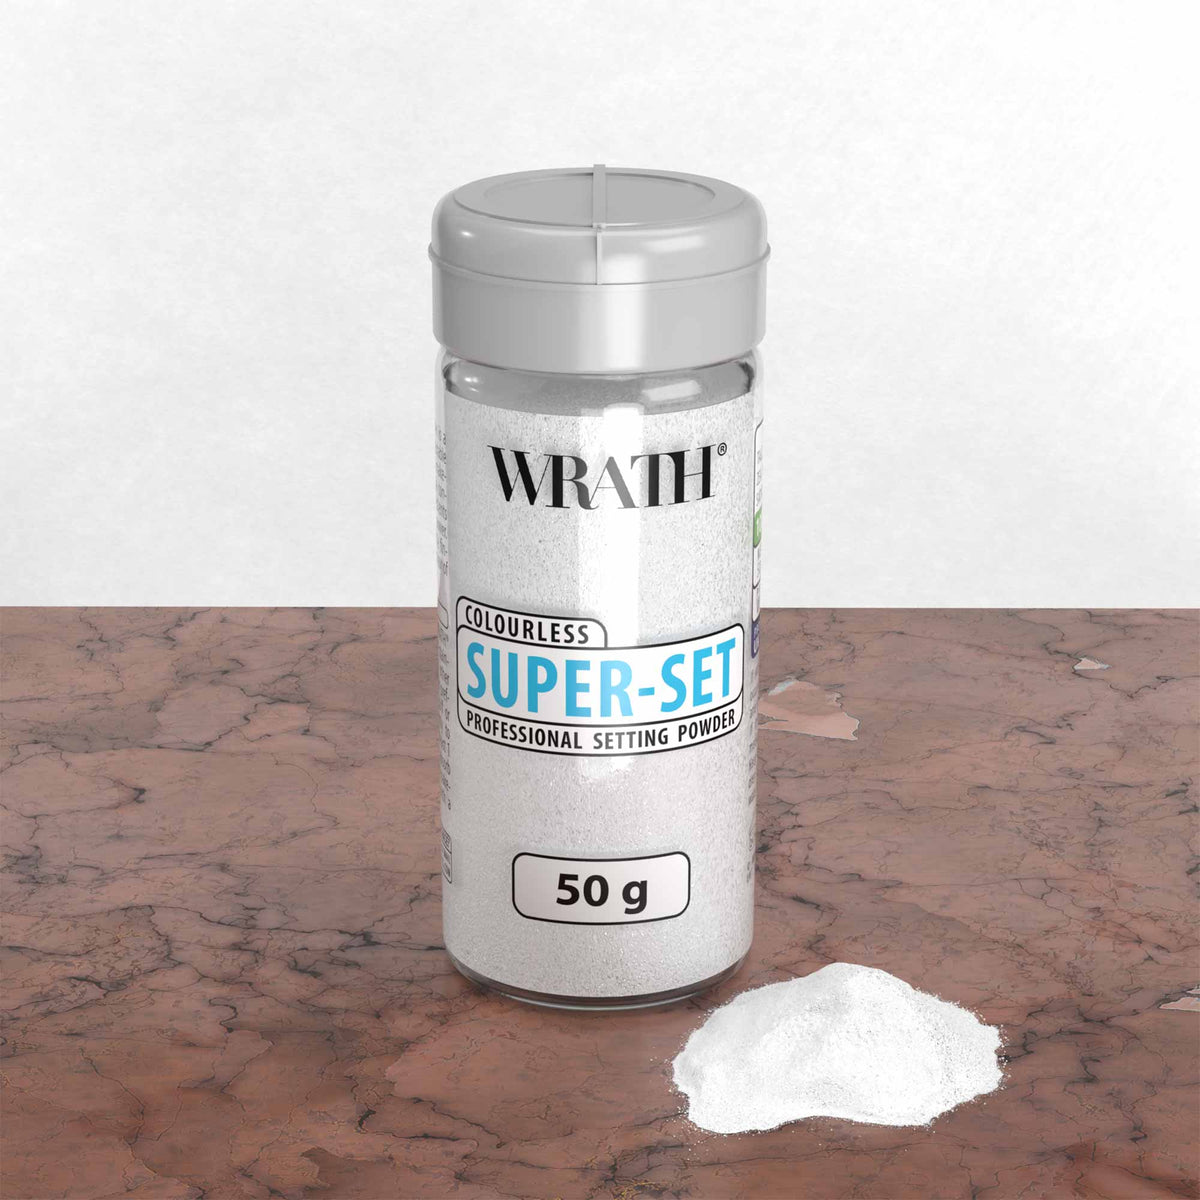 WRATH Super-Set Powder - Professional Setting Powder - Colourless